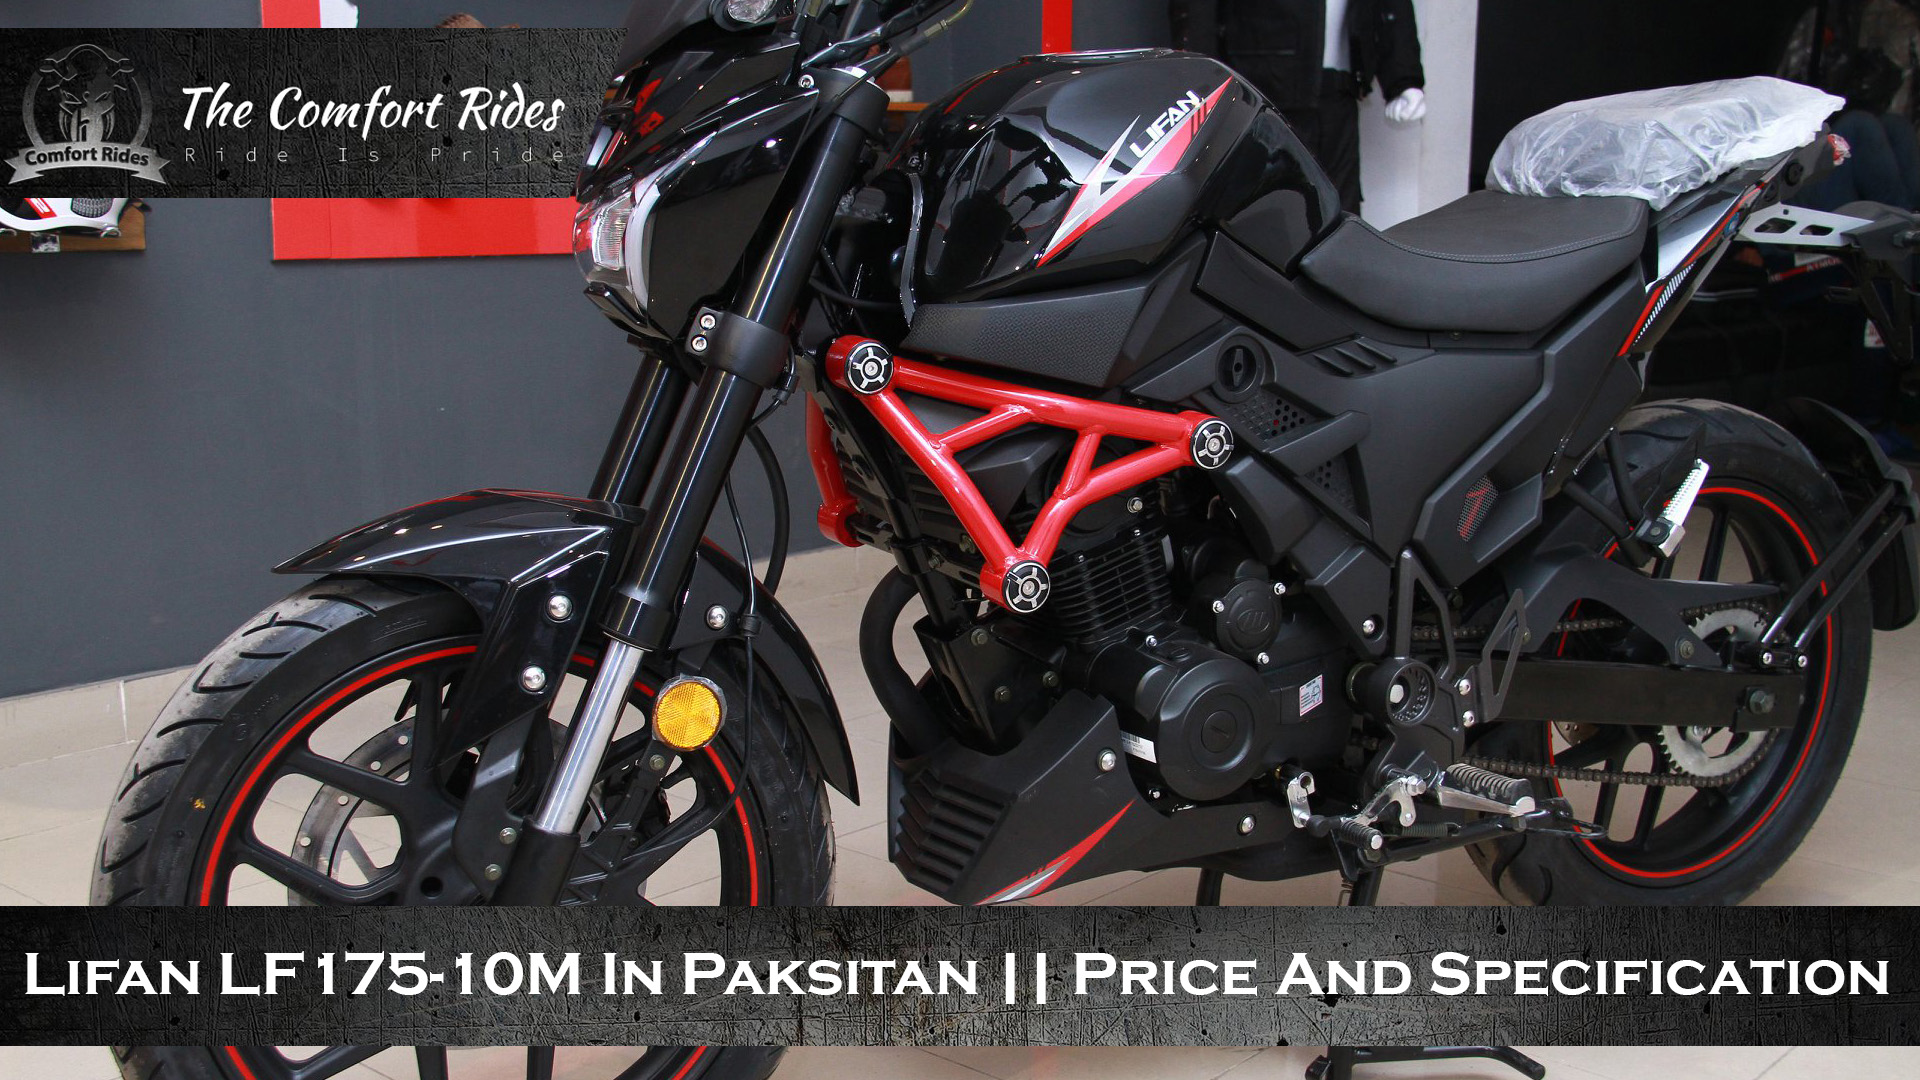 Lifan Lf175 10m In Pakistan Price And Detail Specs Comfort Rides